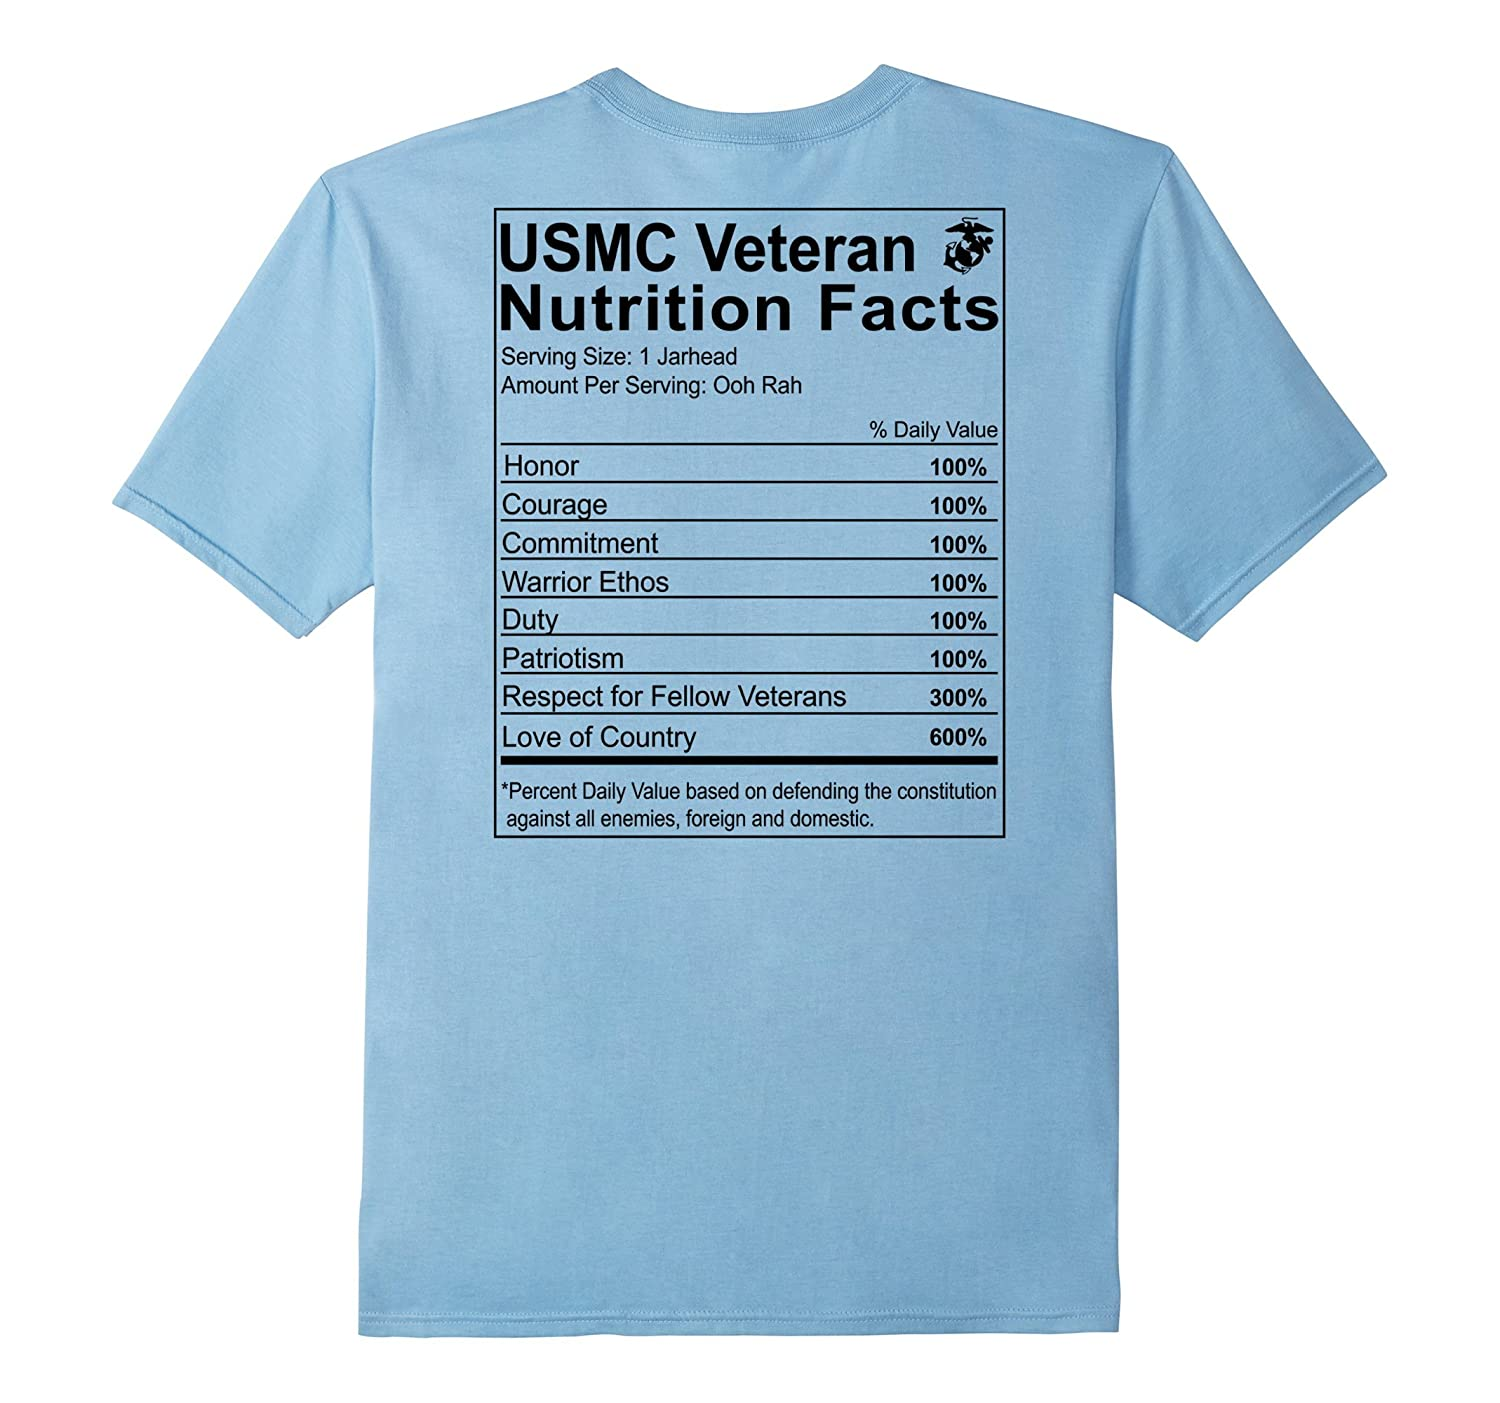 US Marine Corp Veteran Nutrition Facts Shirt Print-Yolotee